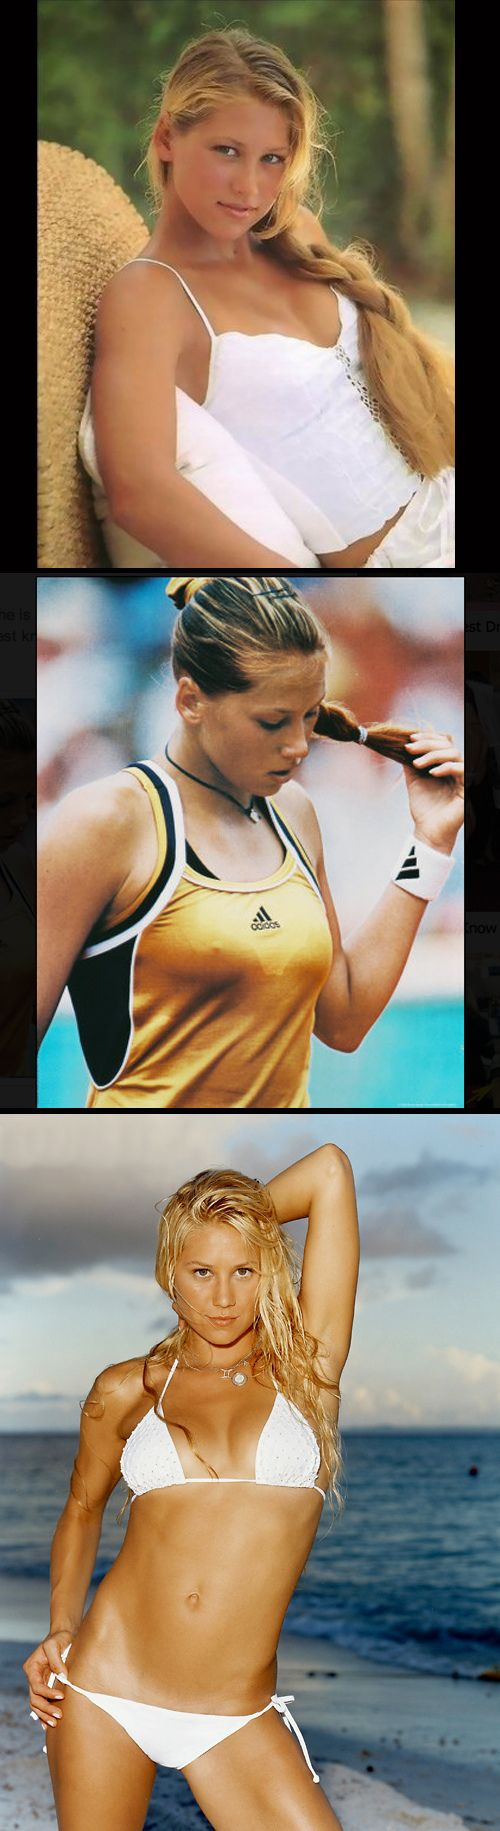 Commit error. Anna kournikova breast size agree